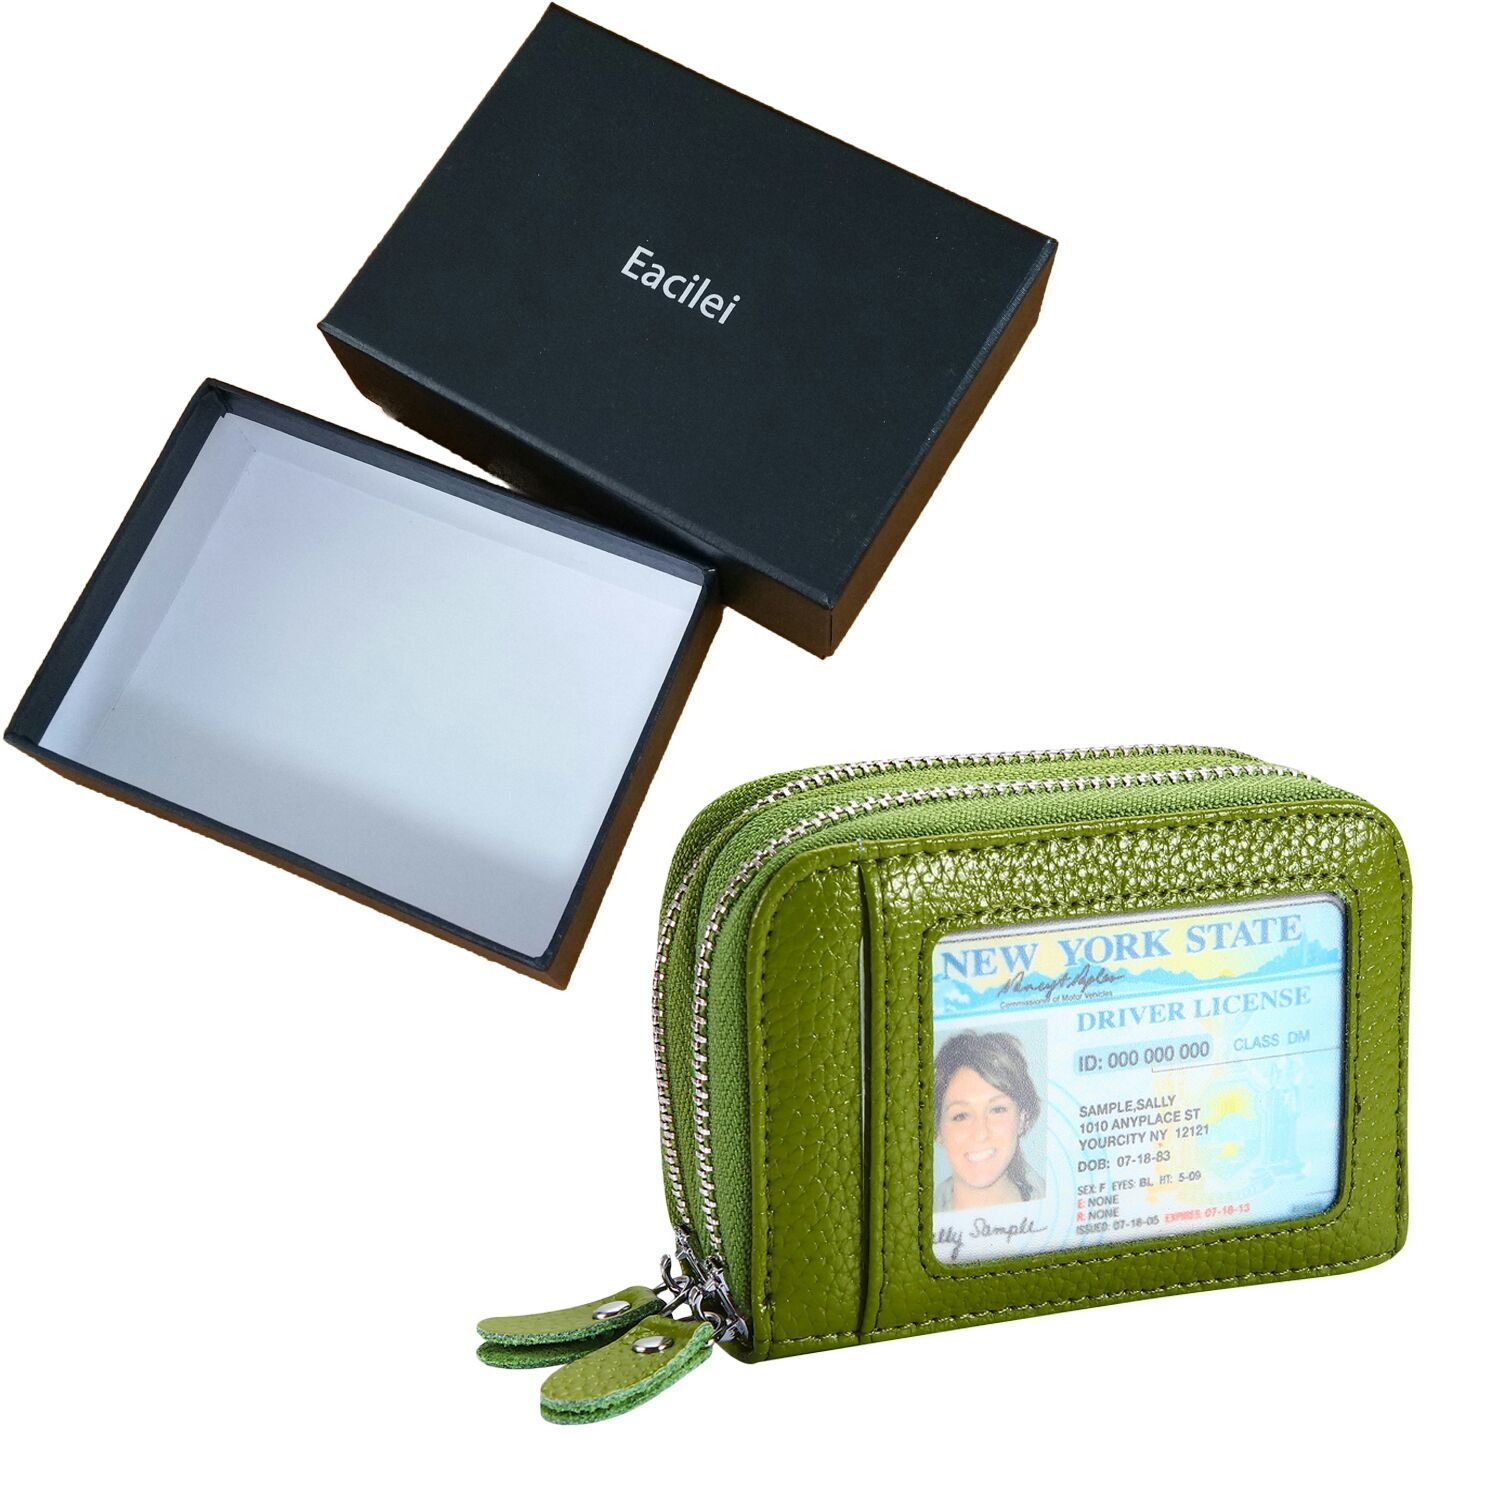 RFID Blocking Leather Wallet Women/Women's Credit Card Holder/Protector with Coin Zipper Pocket - Small Purse (Green)